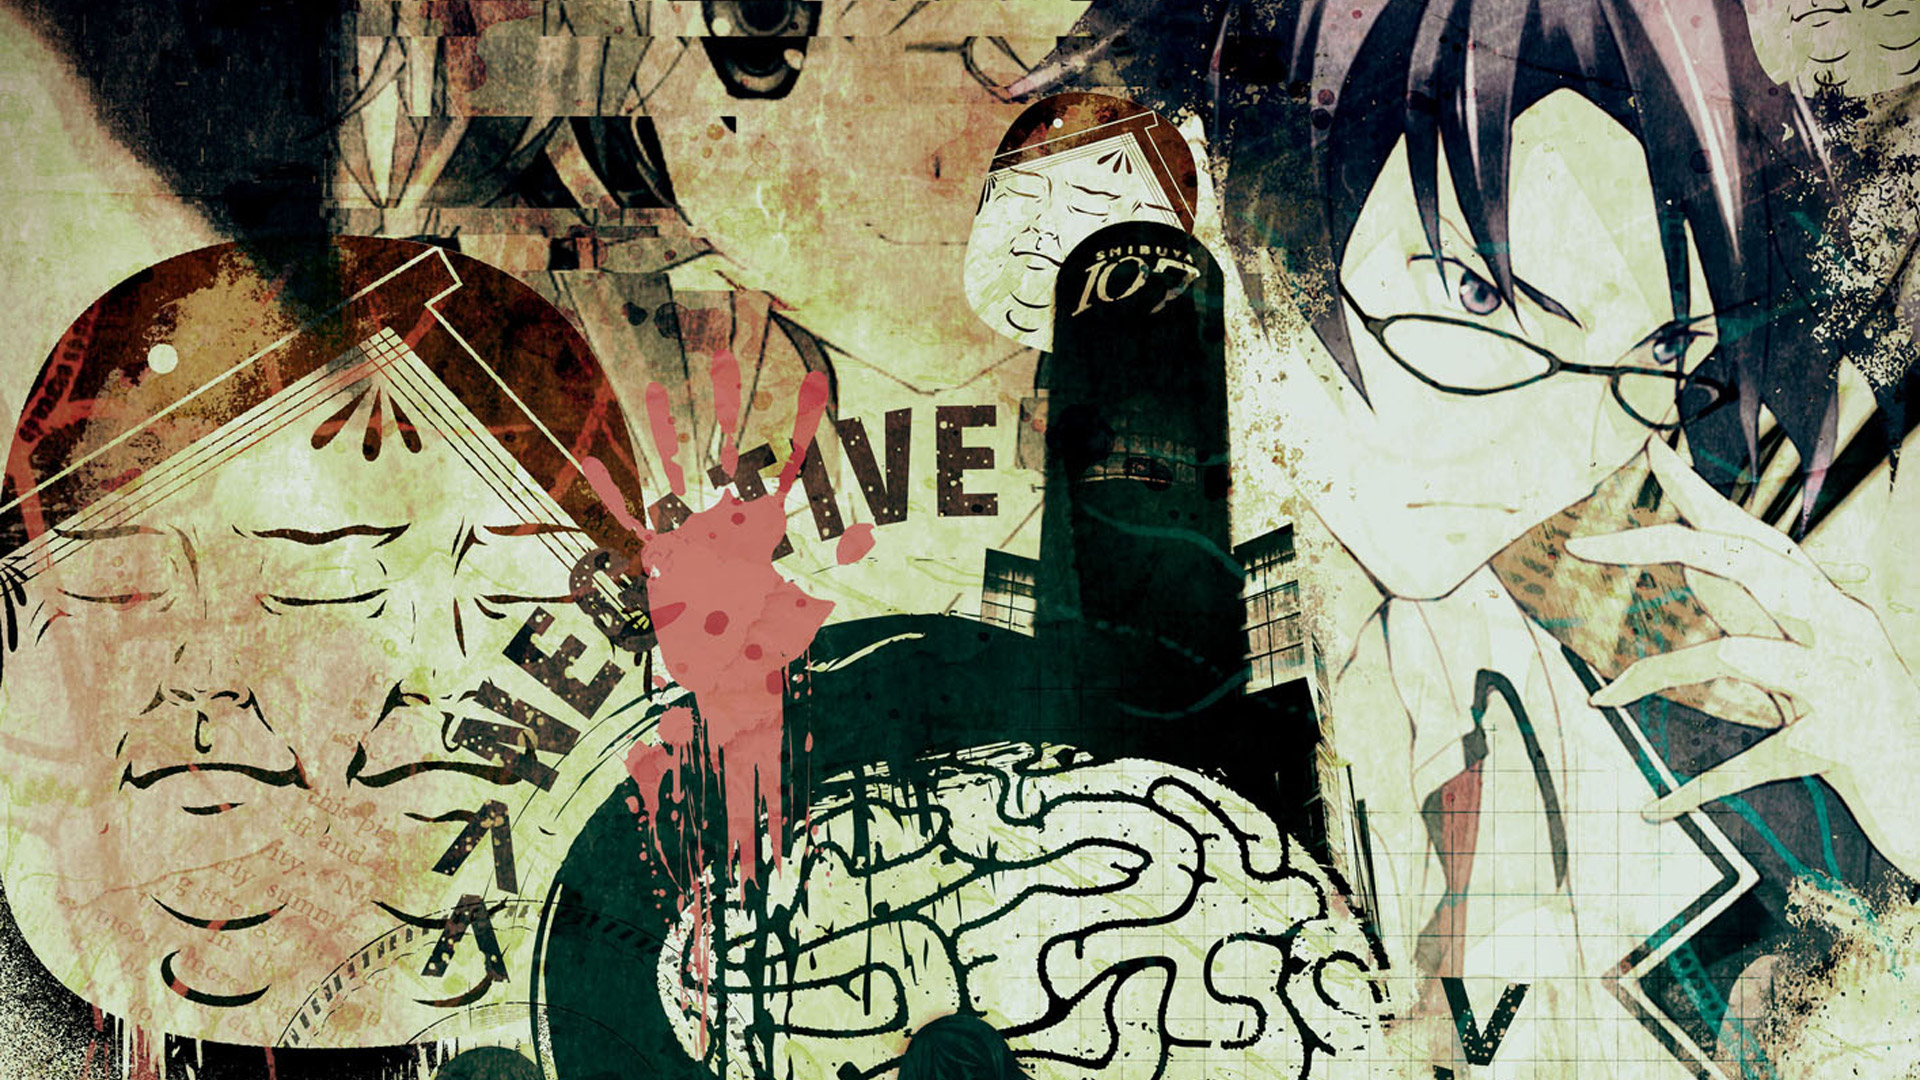 Free Chaos;Child Wallpaper in 1920x1080